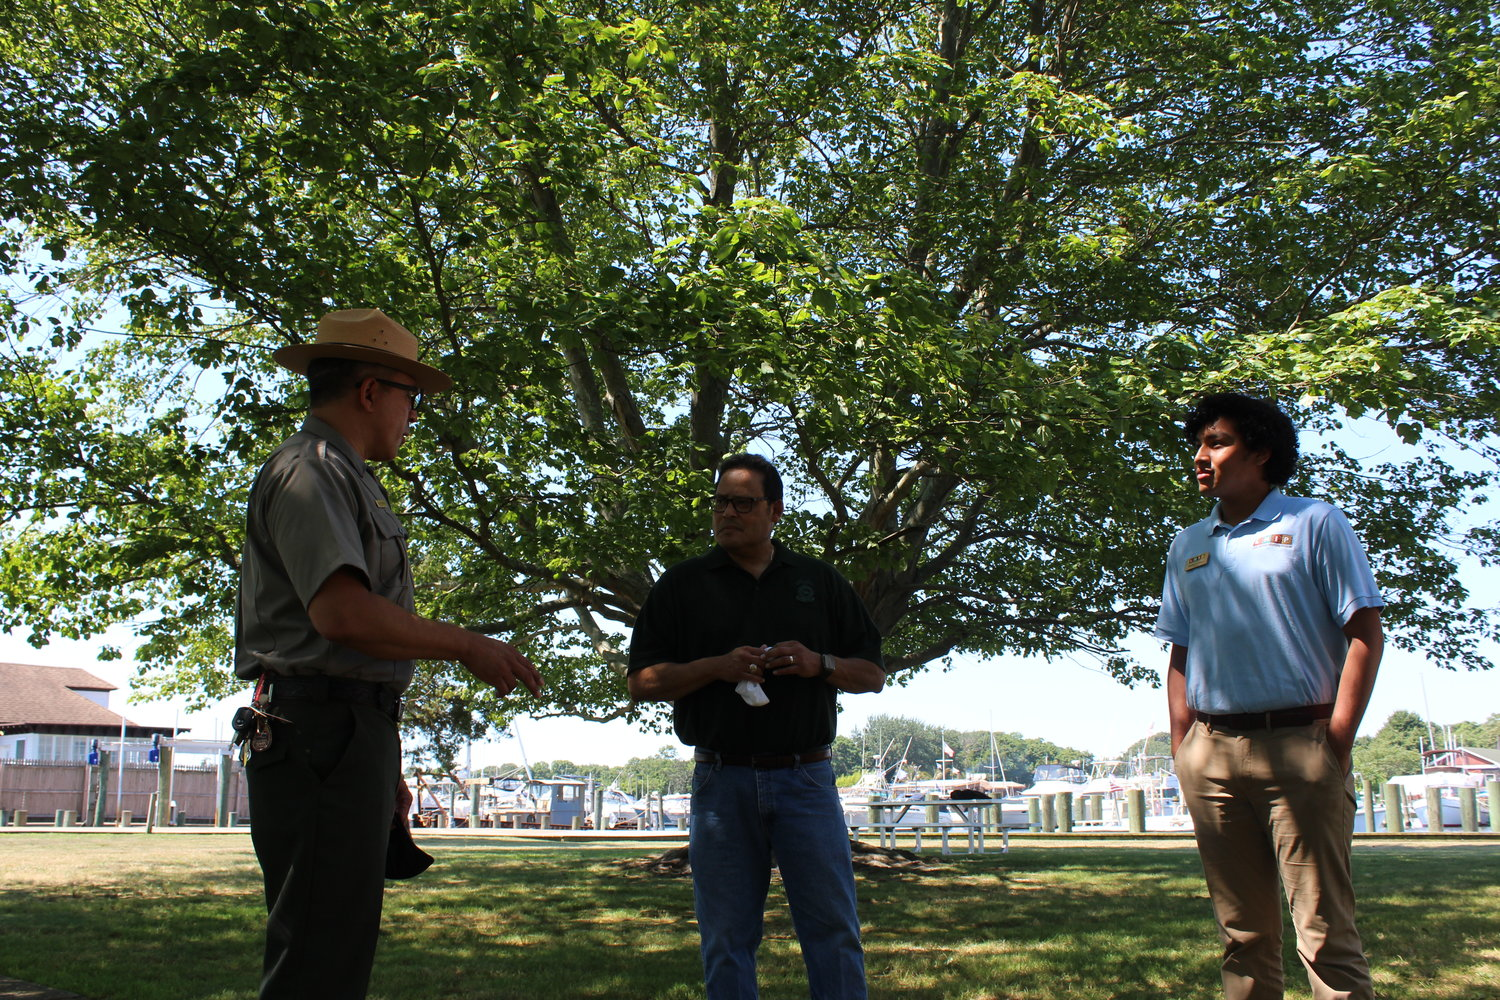 FINS Superintendent Alexcy Romero (left) with deputy director David Vela, who exercises the authority of director for the National Park